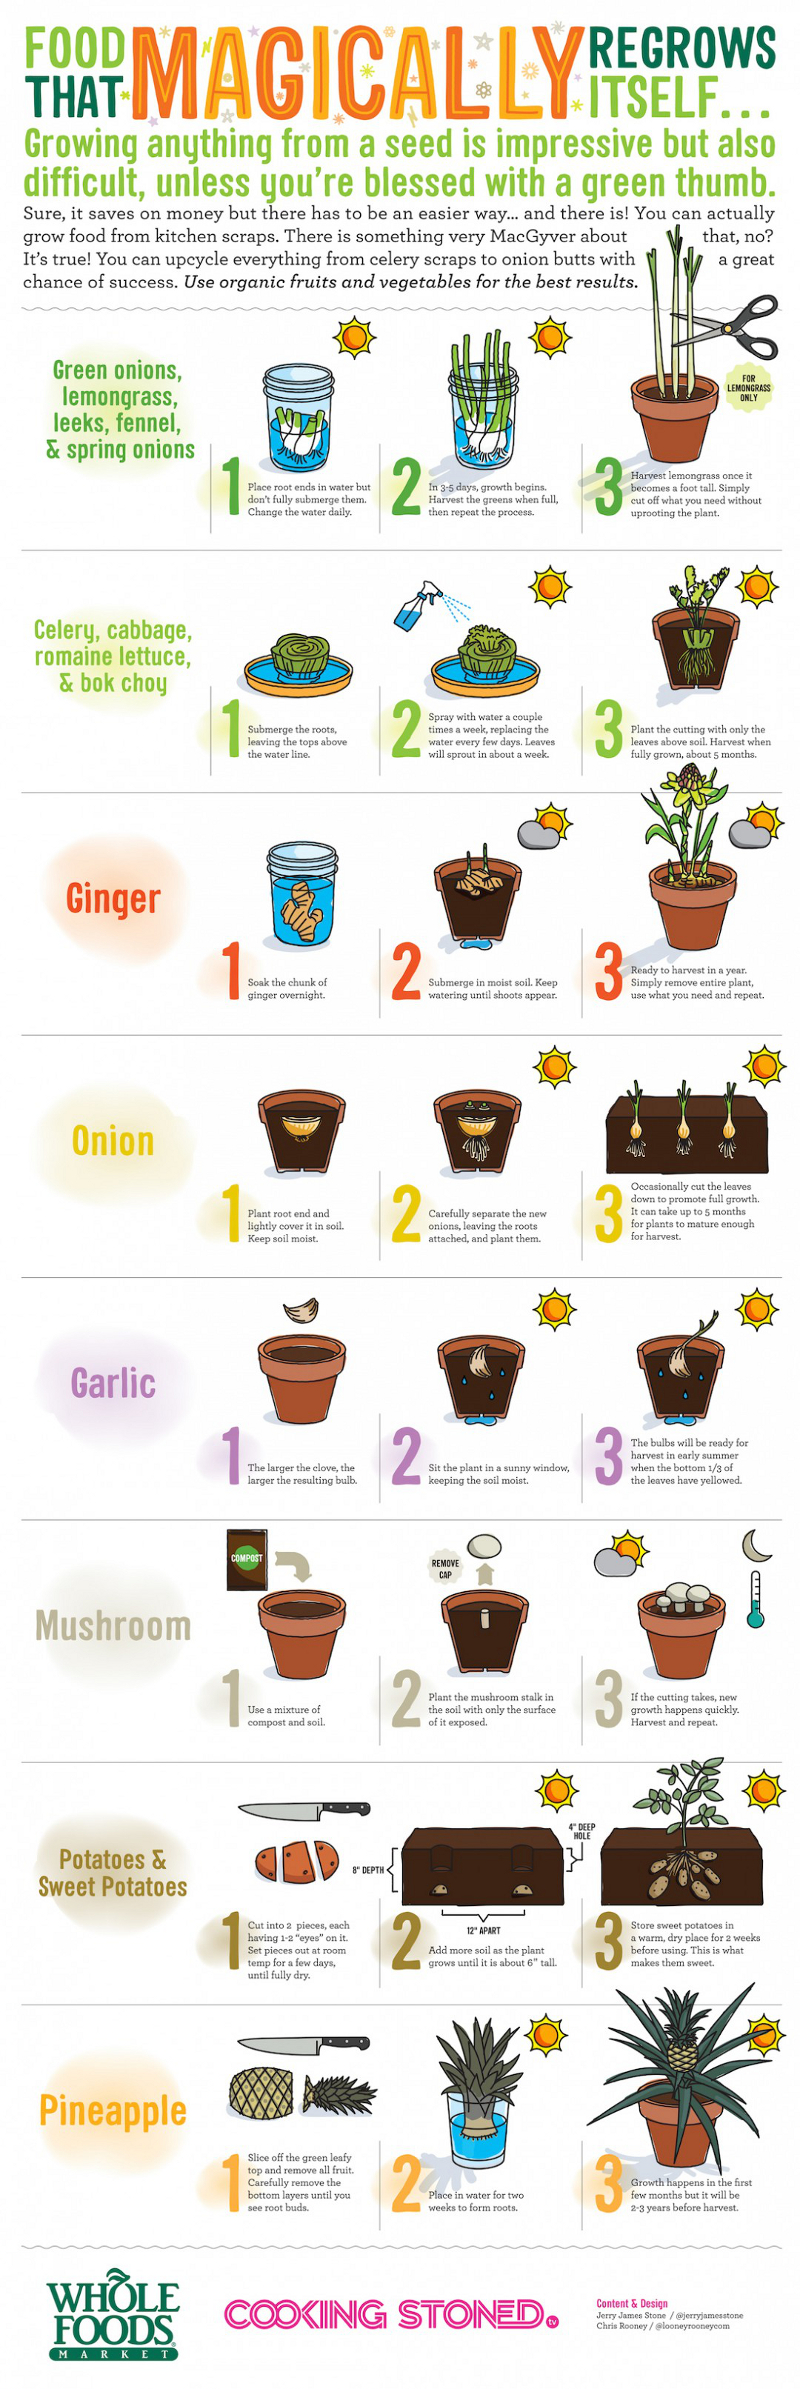 Food-That-Regrow-From-Scraps